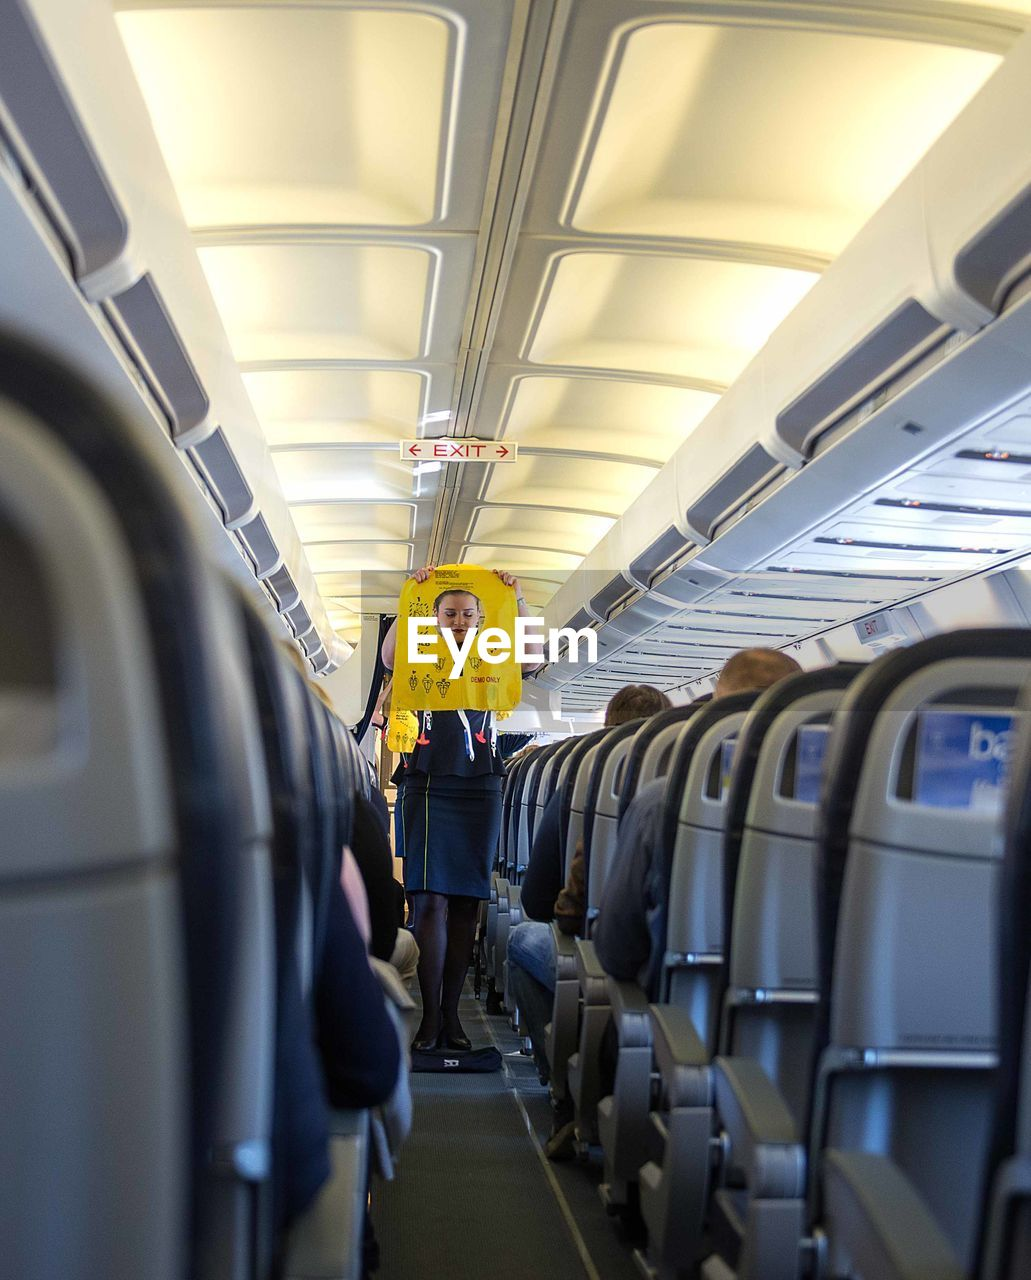 public transportation, vehicle seat, vehicle interior, mode of transportation, transportation, travel, seat, airplane, train, men, real people, indoors, air vehicle, rail transportation, train - vehicle, rear view, people, group of people, journey, incidental people, airplane seat, subway train, ceiling